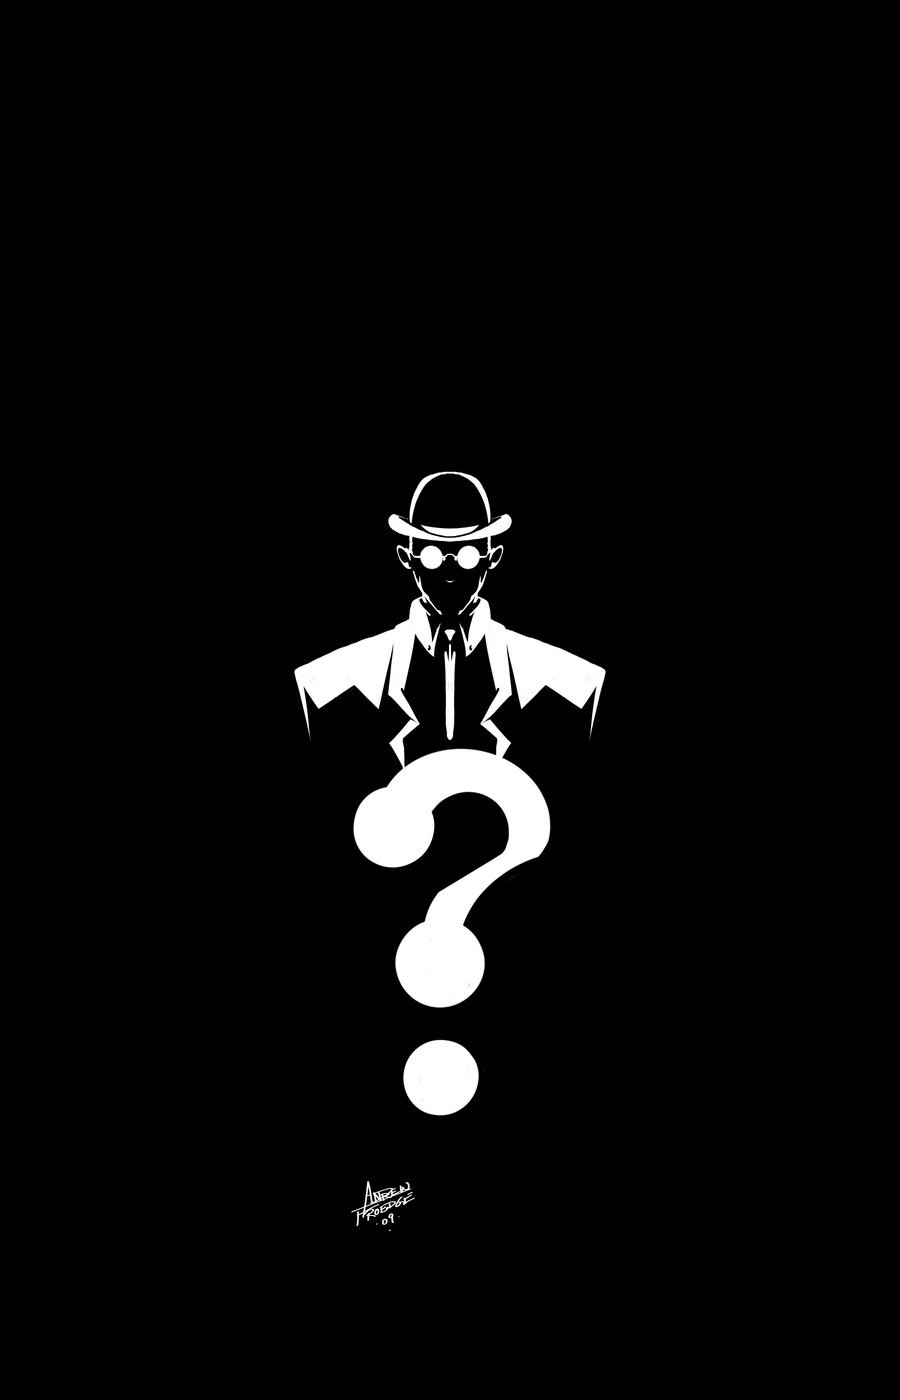 The Riddler Question Mark Wallpaper Riddler by andrewfroedge 900x1400